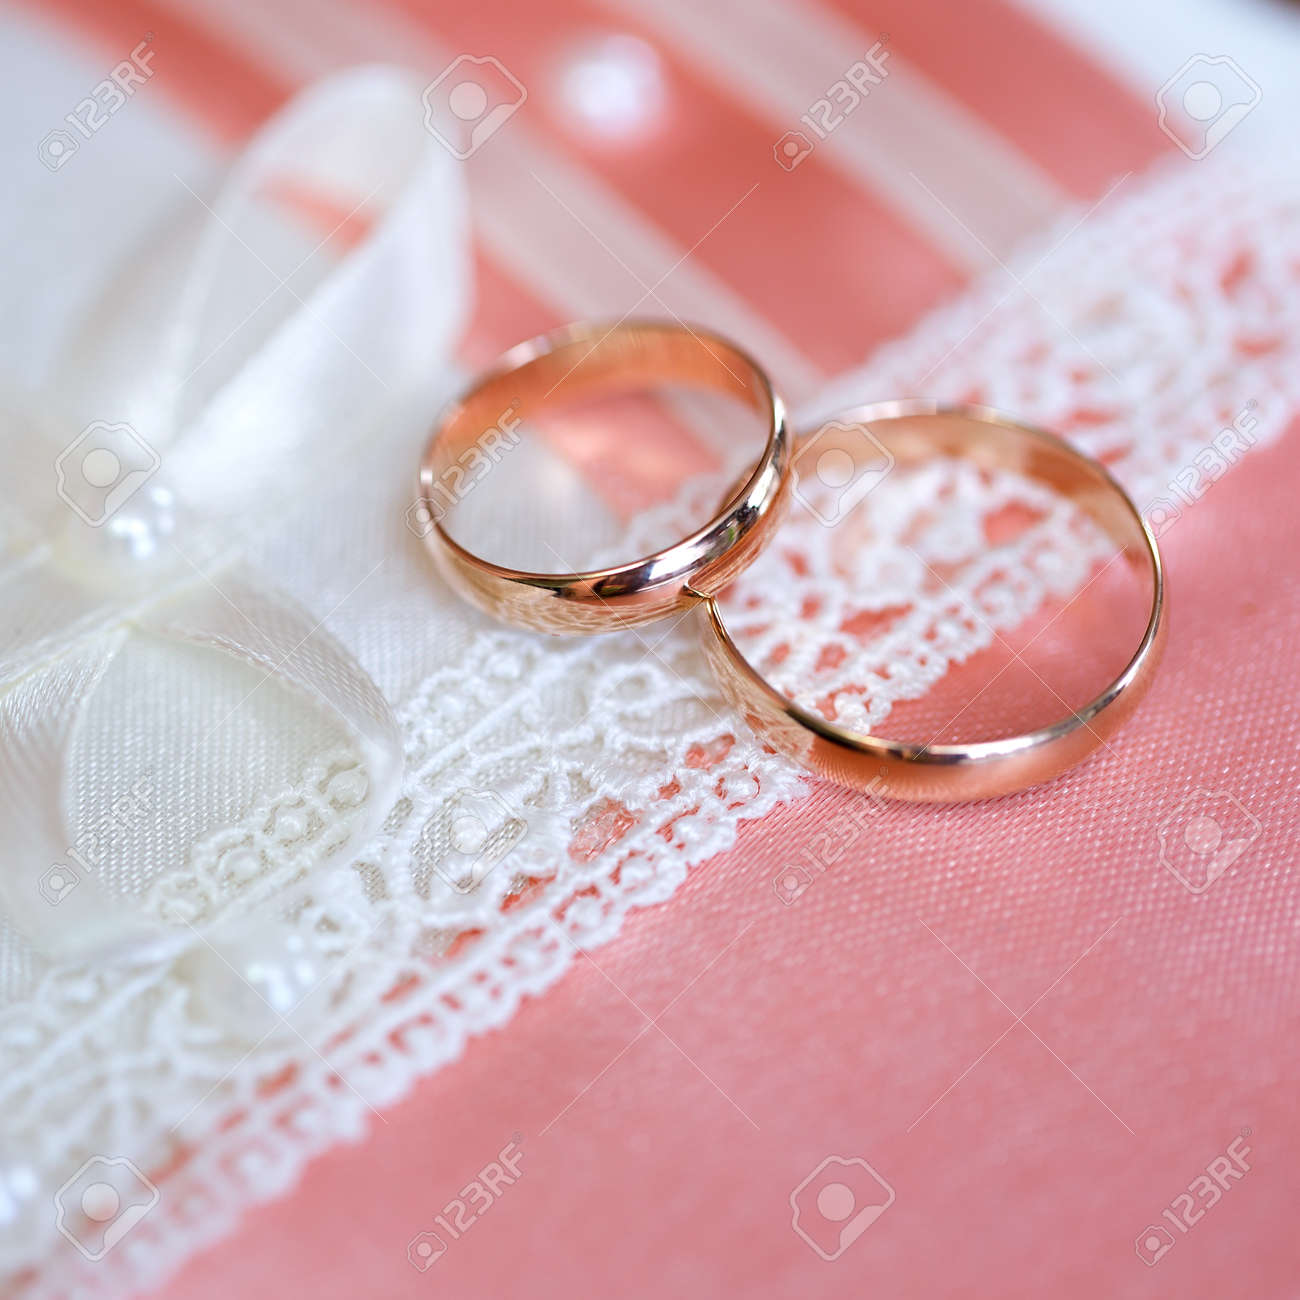 Wedding Gold Rings Bride And Groom On Decorative Pillow. Stock Photo ...